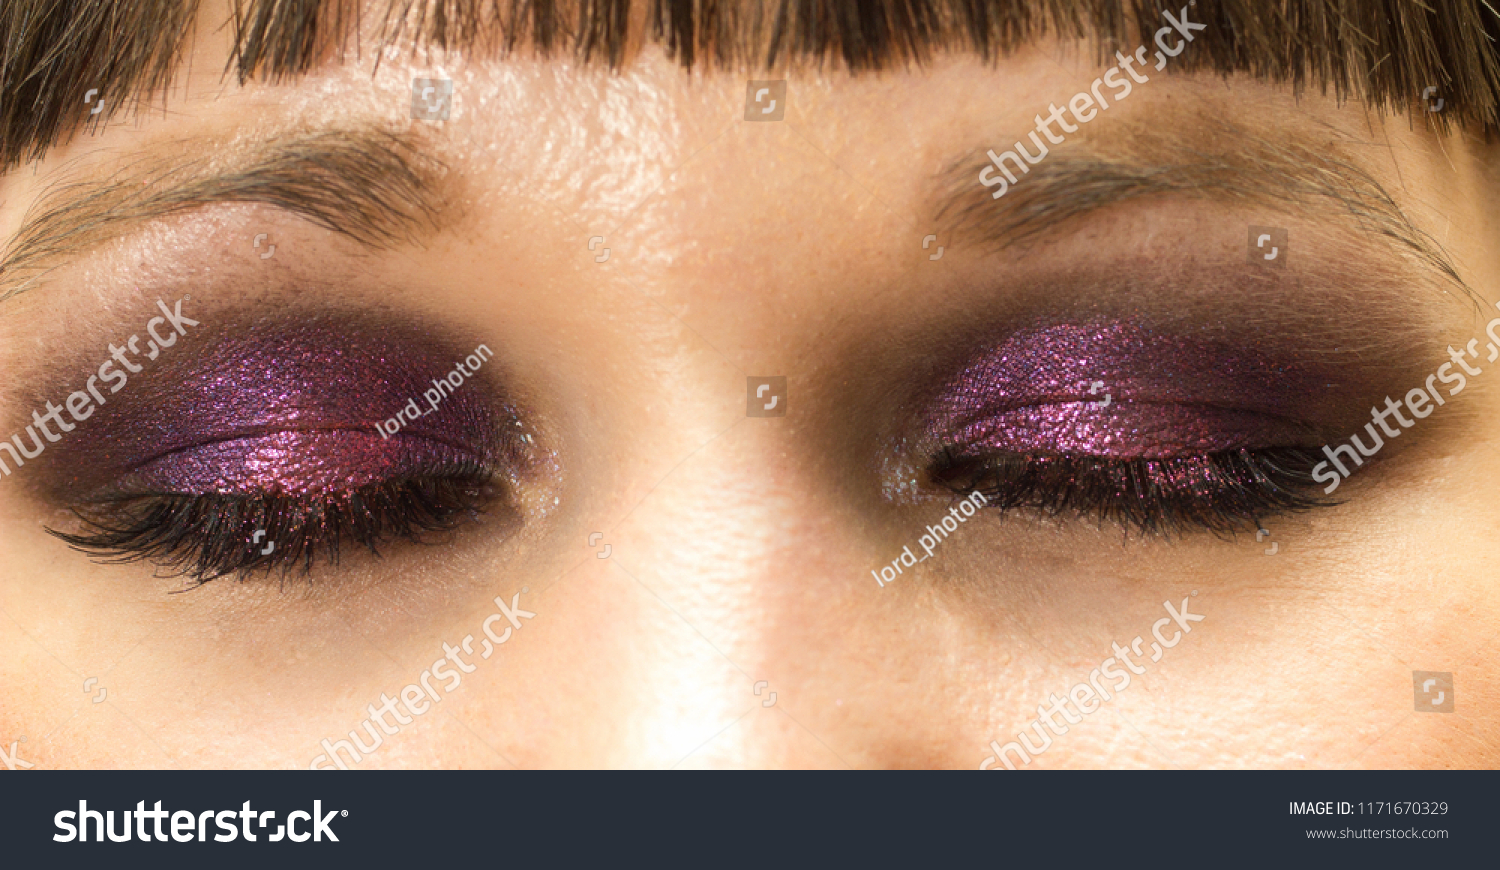 2019 year for lady- Makeup eye purple close up photo